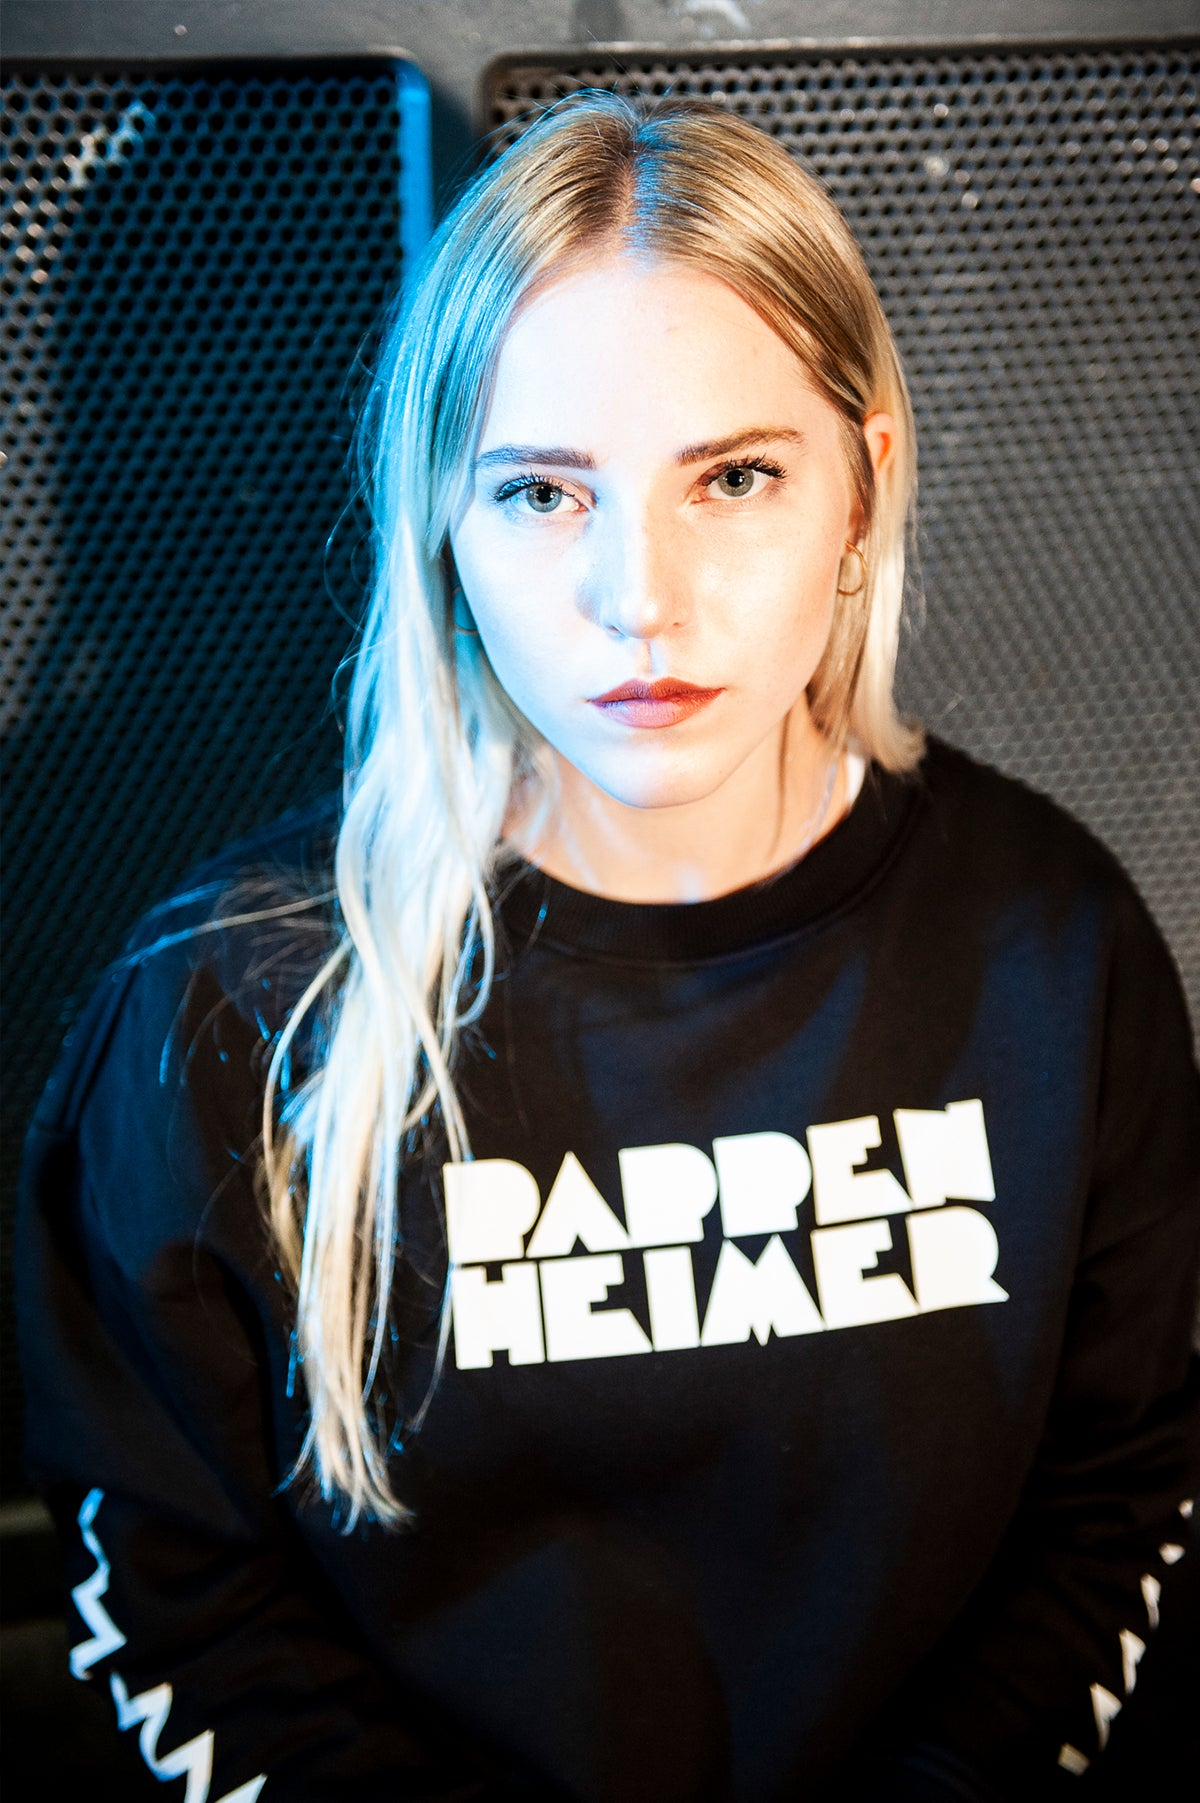 Pappenheimer sweater and Instagram technoinmyveins_